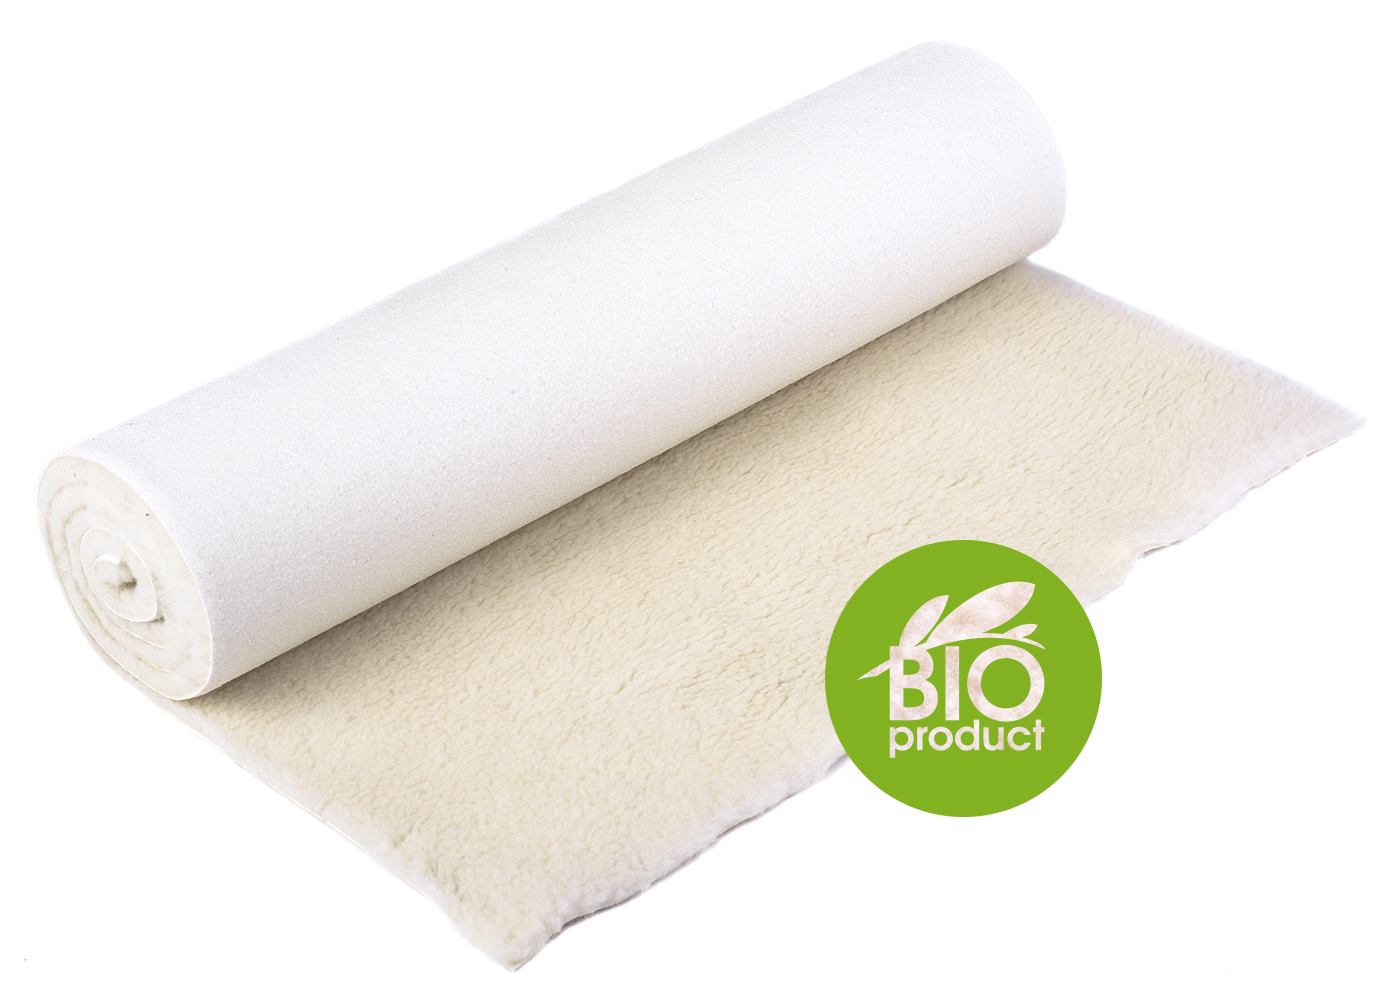 Yoga Mat Nature Bio Virgin Wool Buy Online At Yogistar